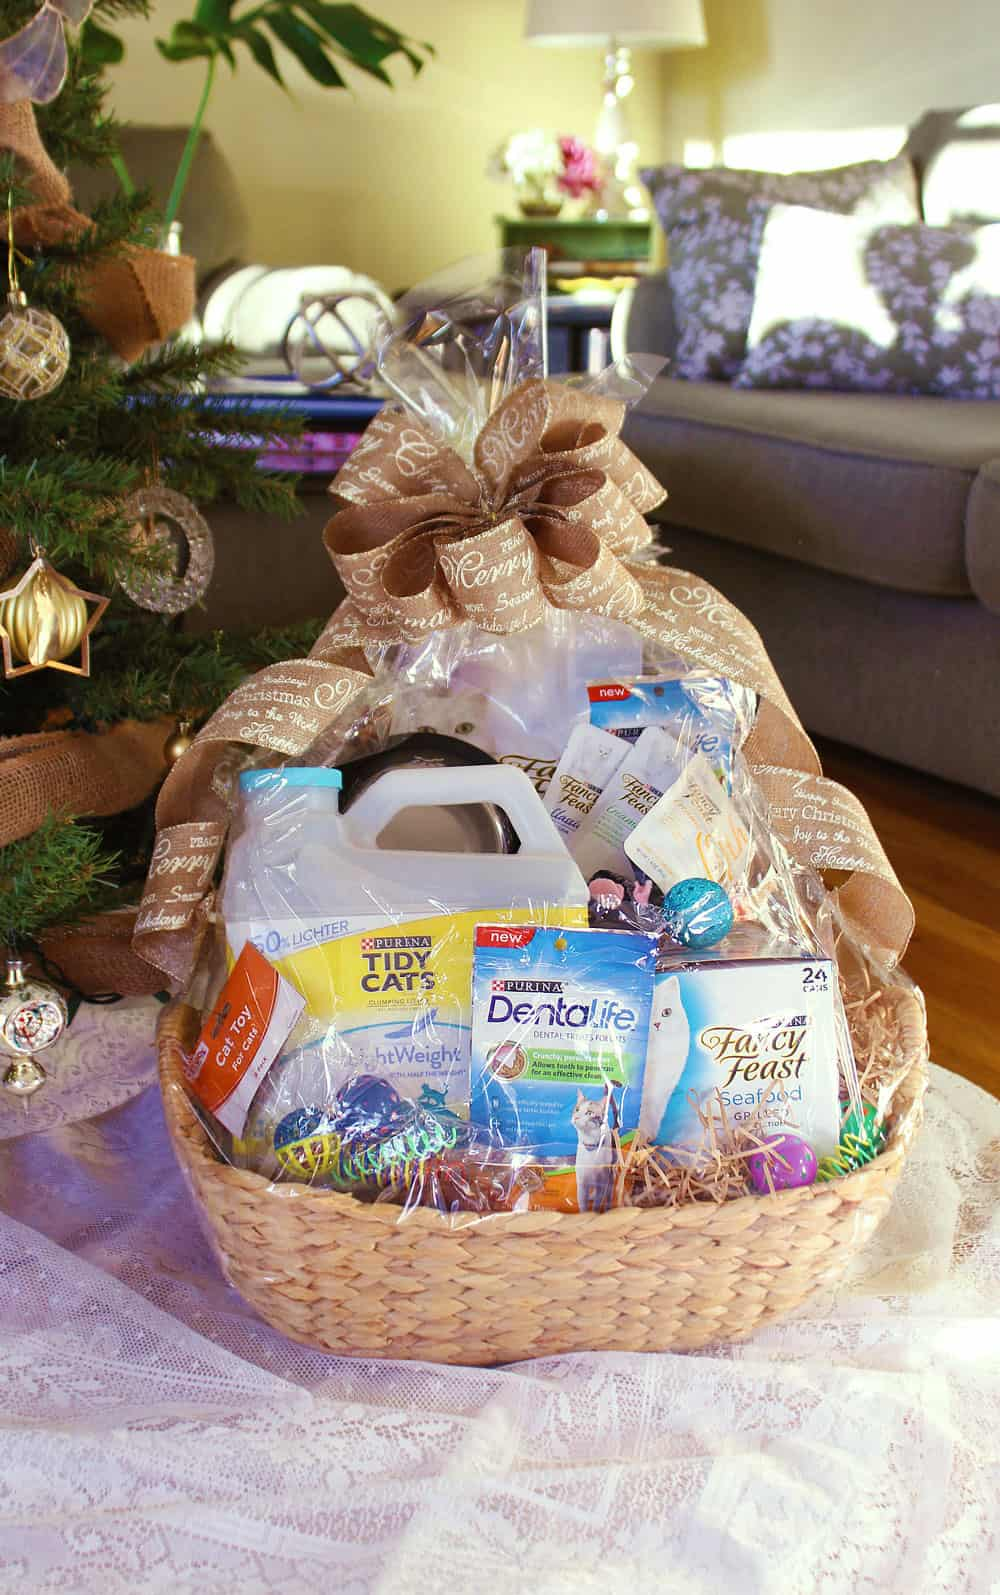 Christmas gift basket ideas-assortment of cat products in a gift basket